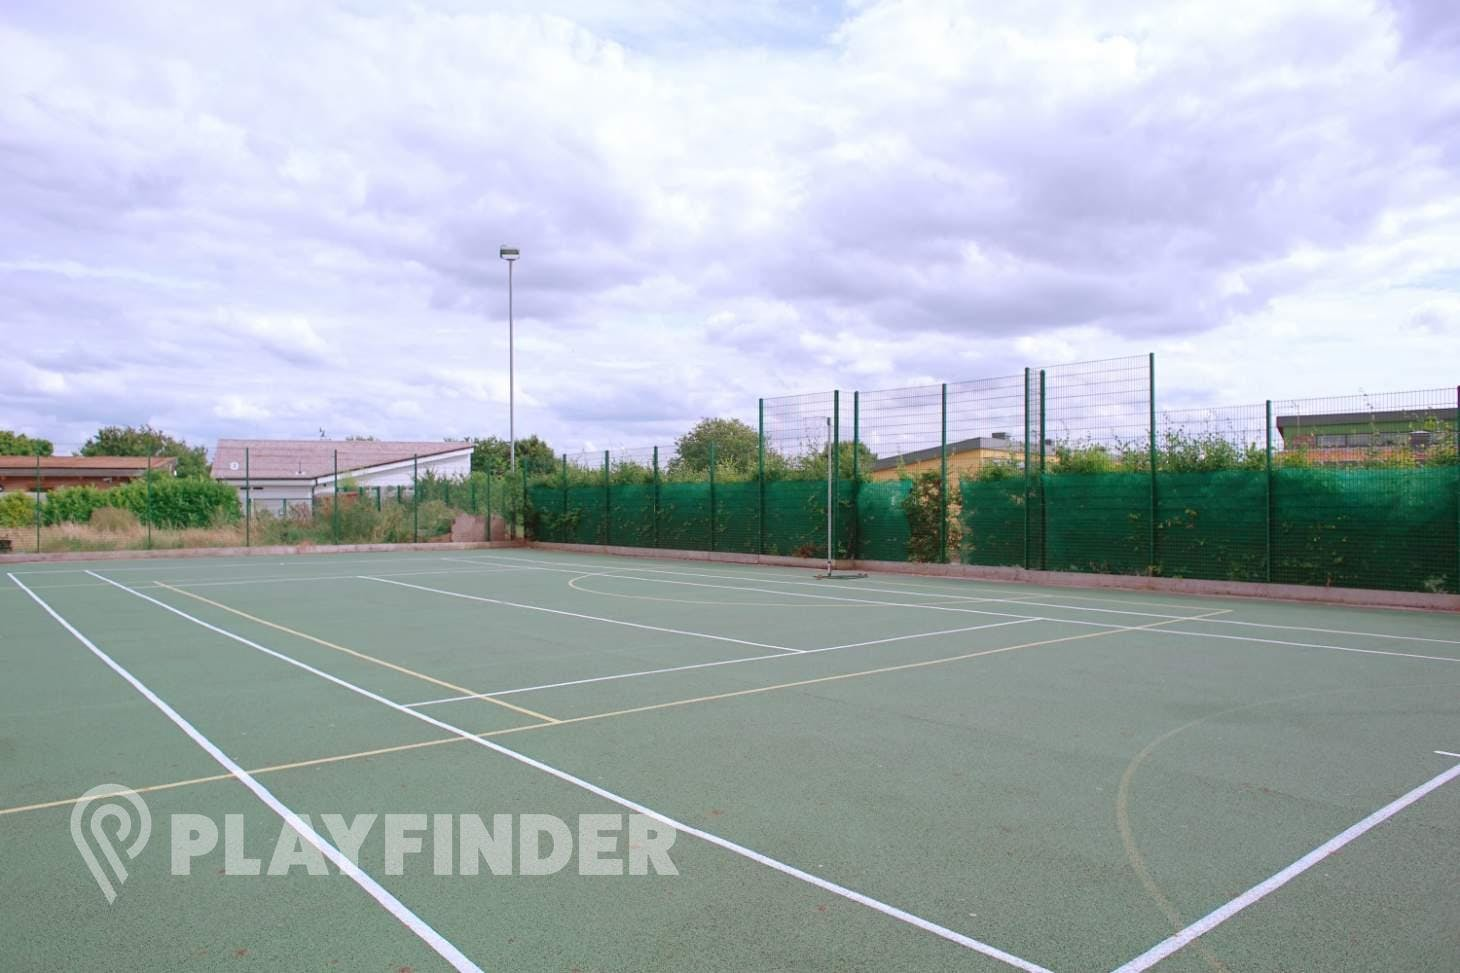 Cox Green Leisure Centre Outdoor | Hard (macadam) netball court